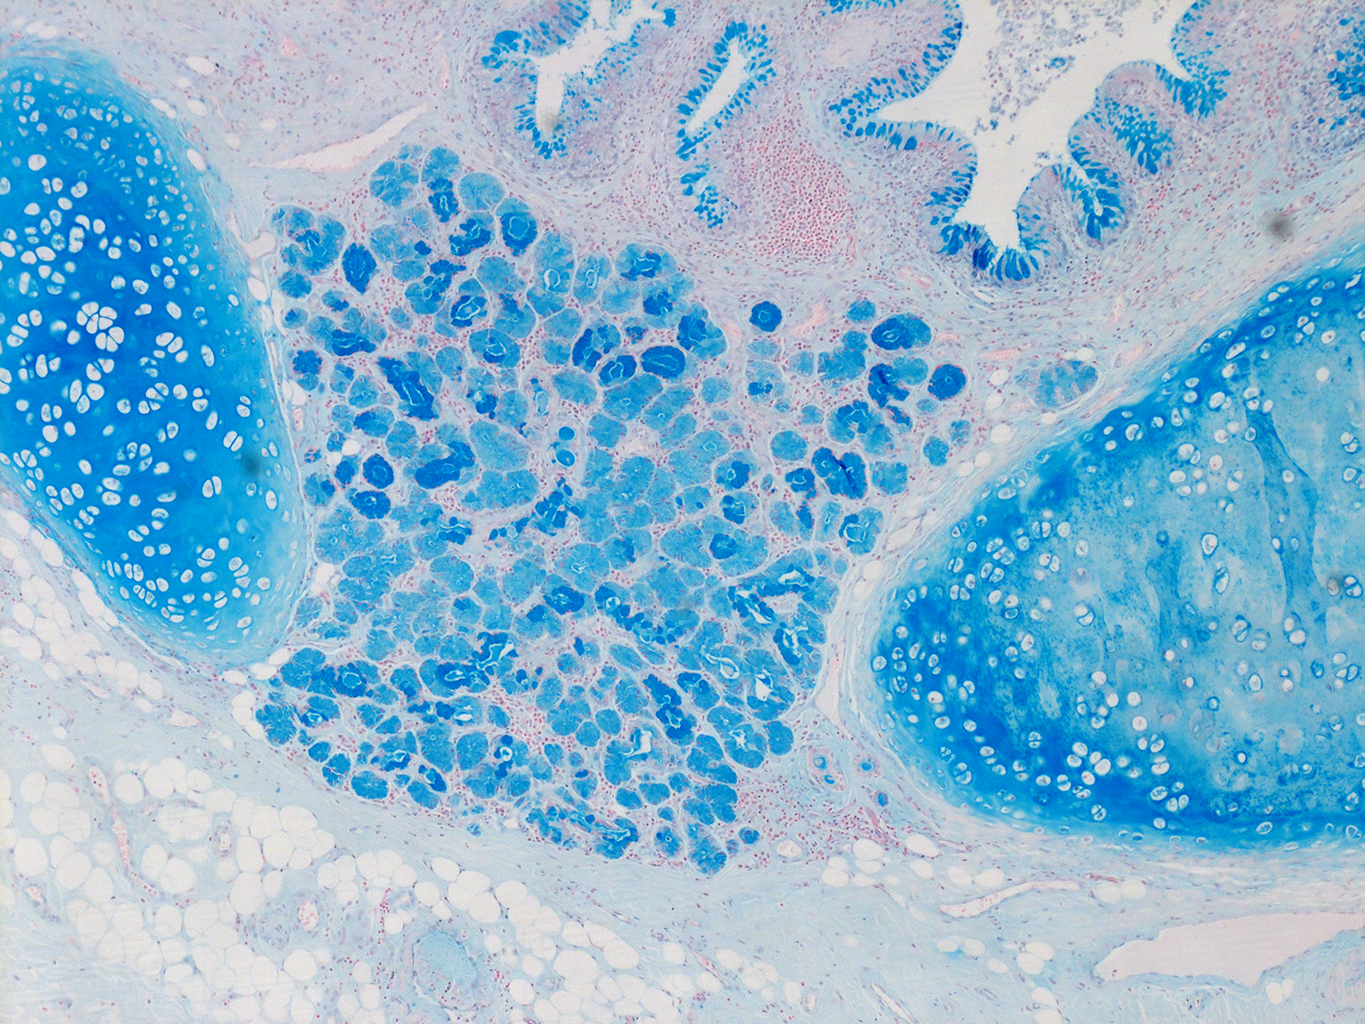 Alcian Blue Staining from PBR 3383 Patient with Cystic Fibrosis